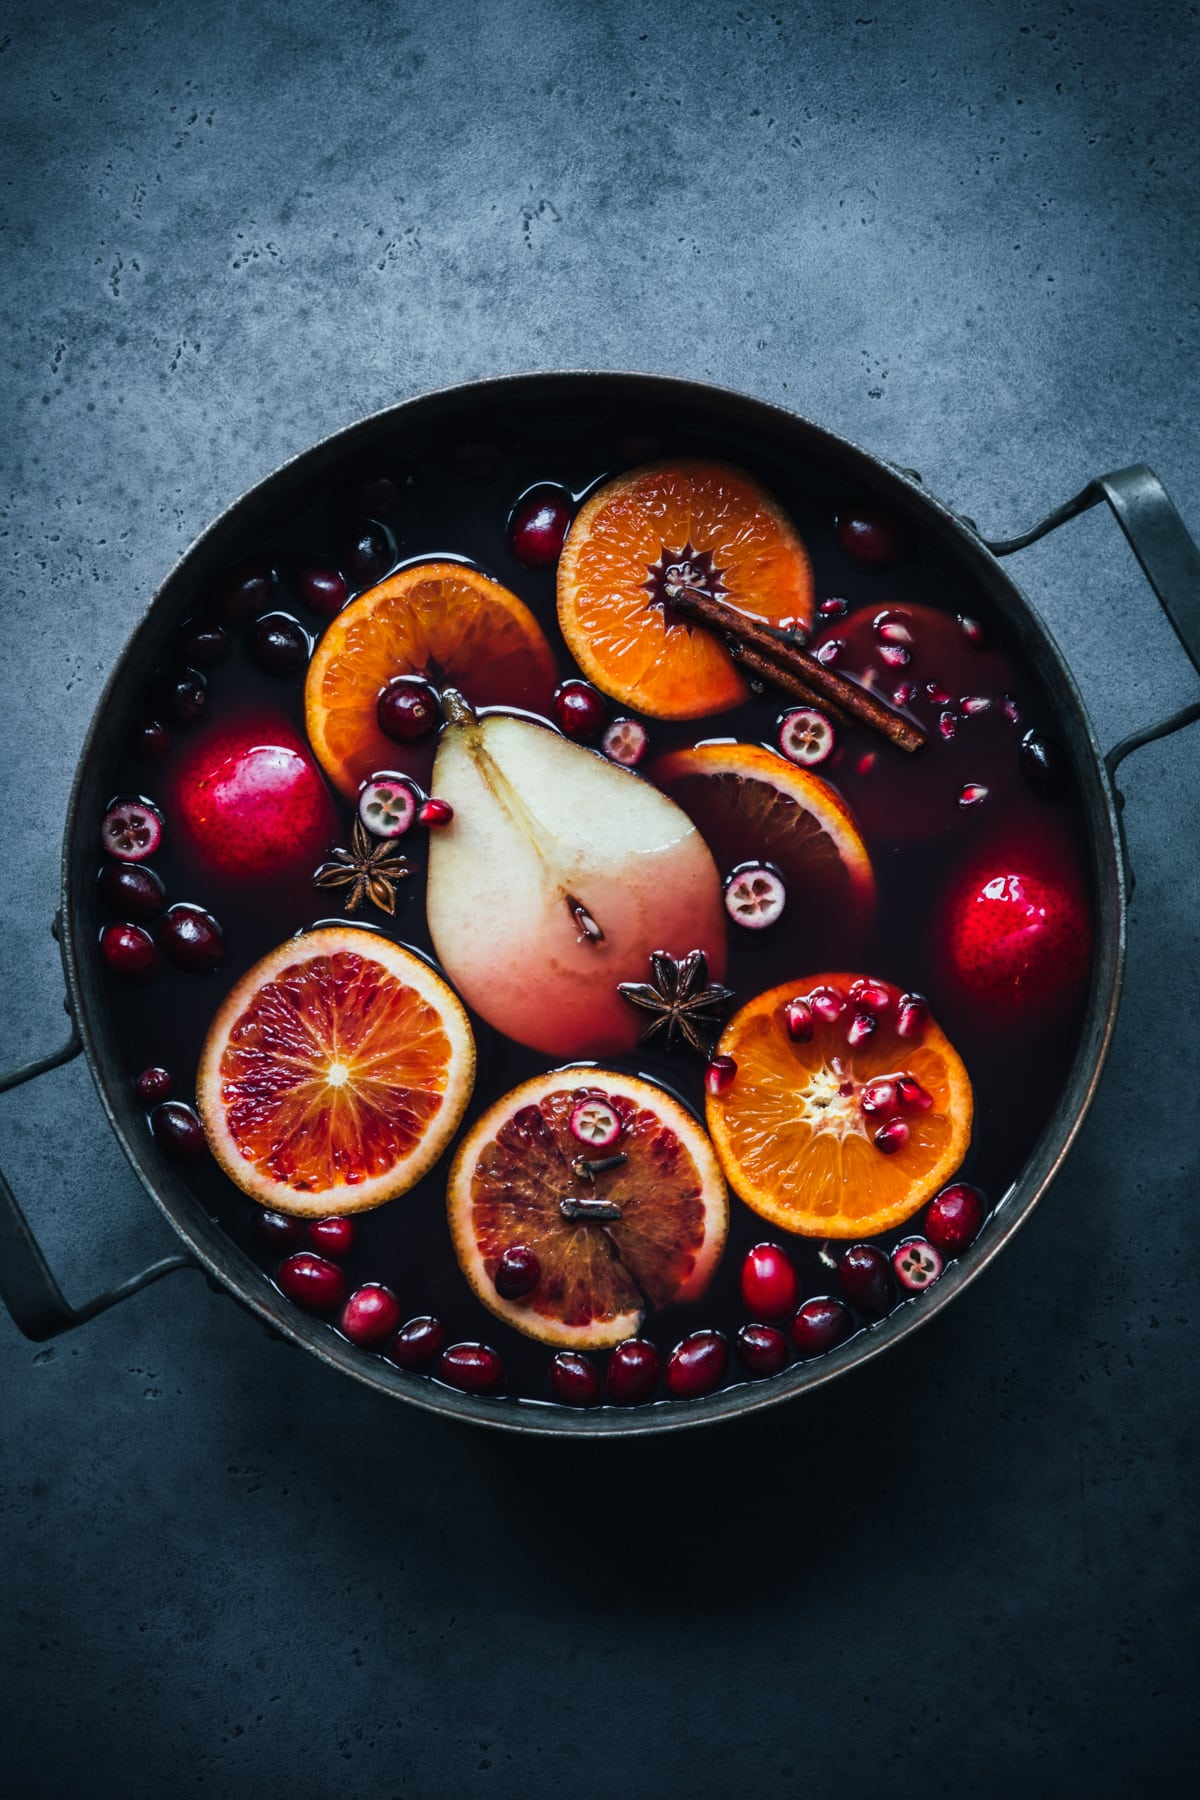 overhead view of spiced citrus and pear mulled wine in a large pot on blue backdrop.